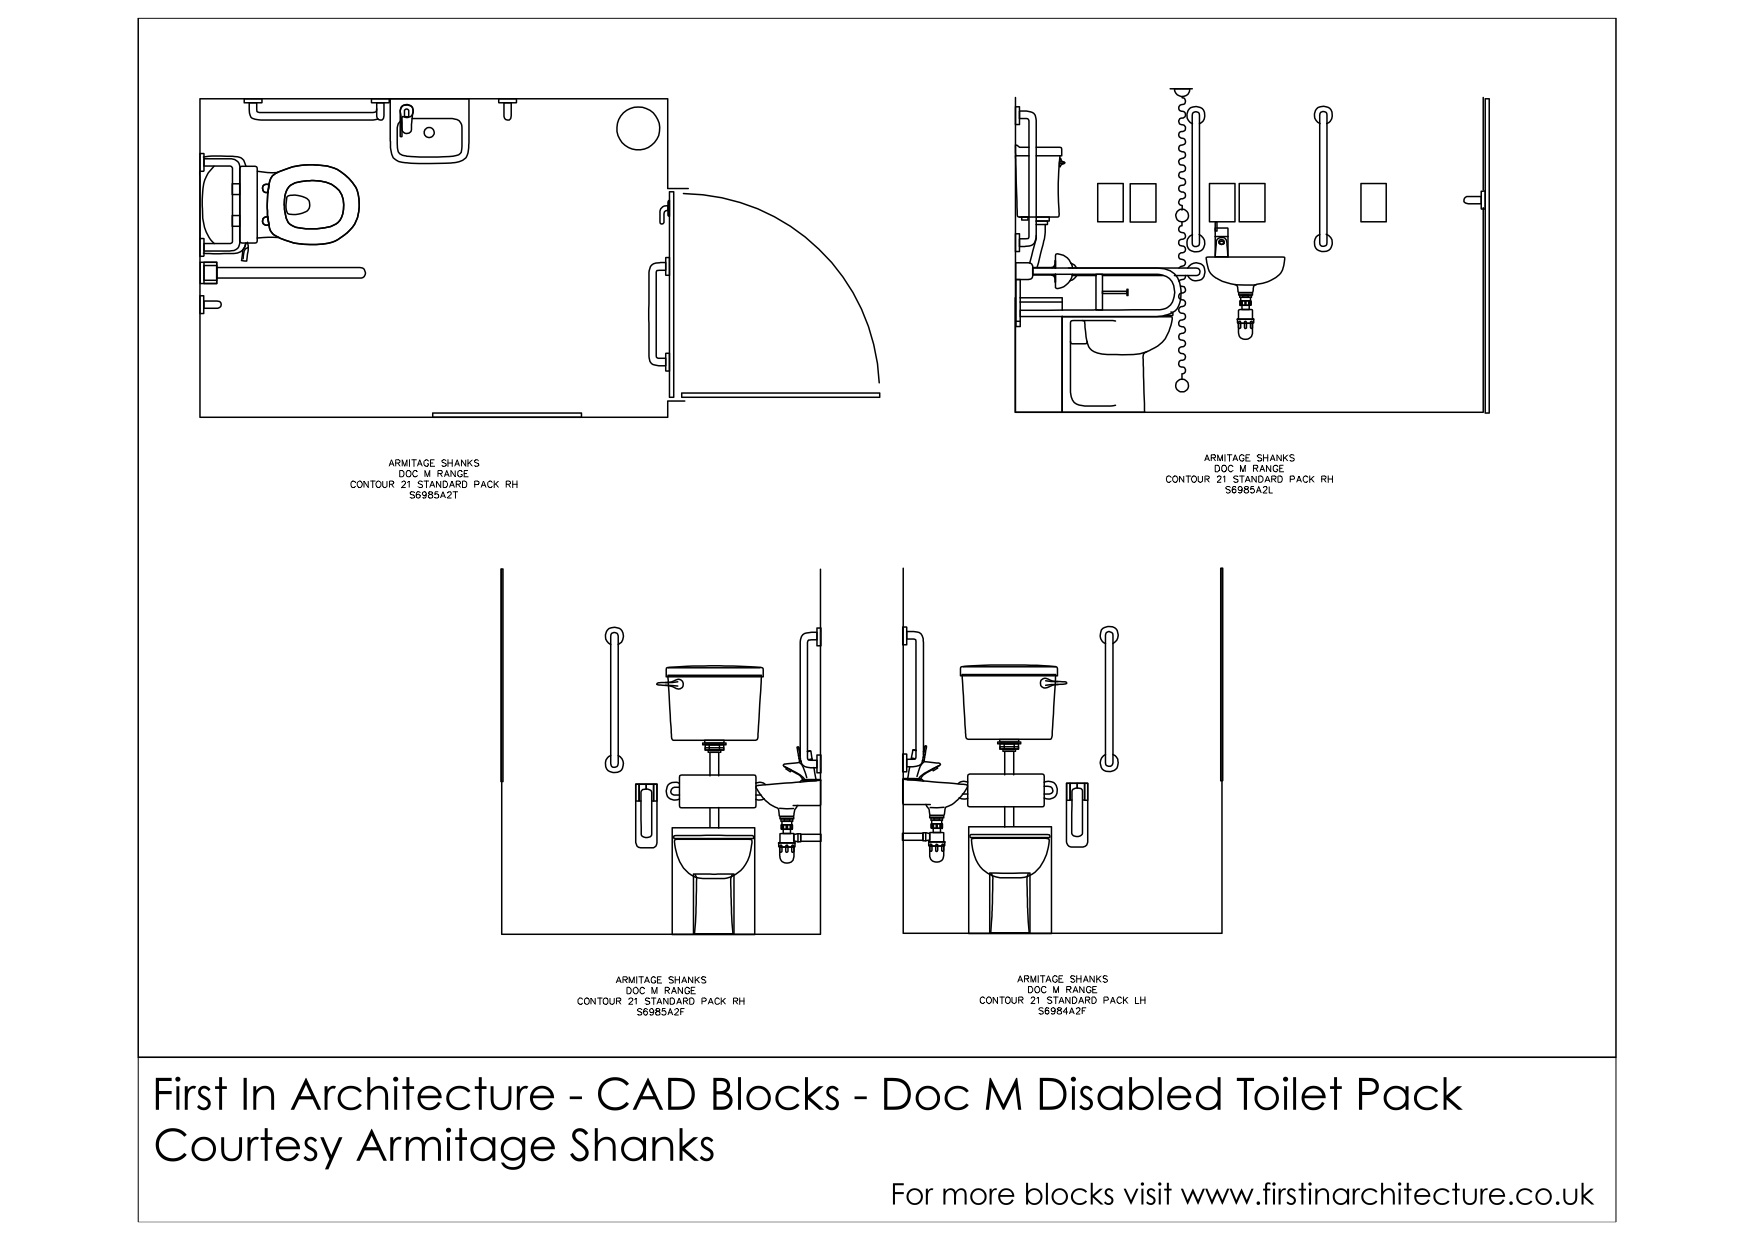 FIA CAD Blocks Doc M Disabled Toilet Free  First In Architecture